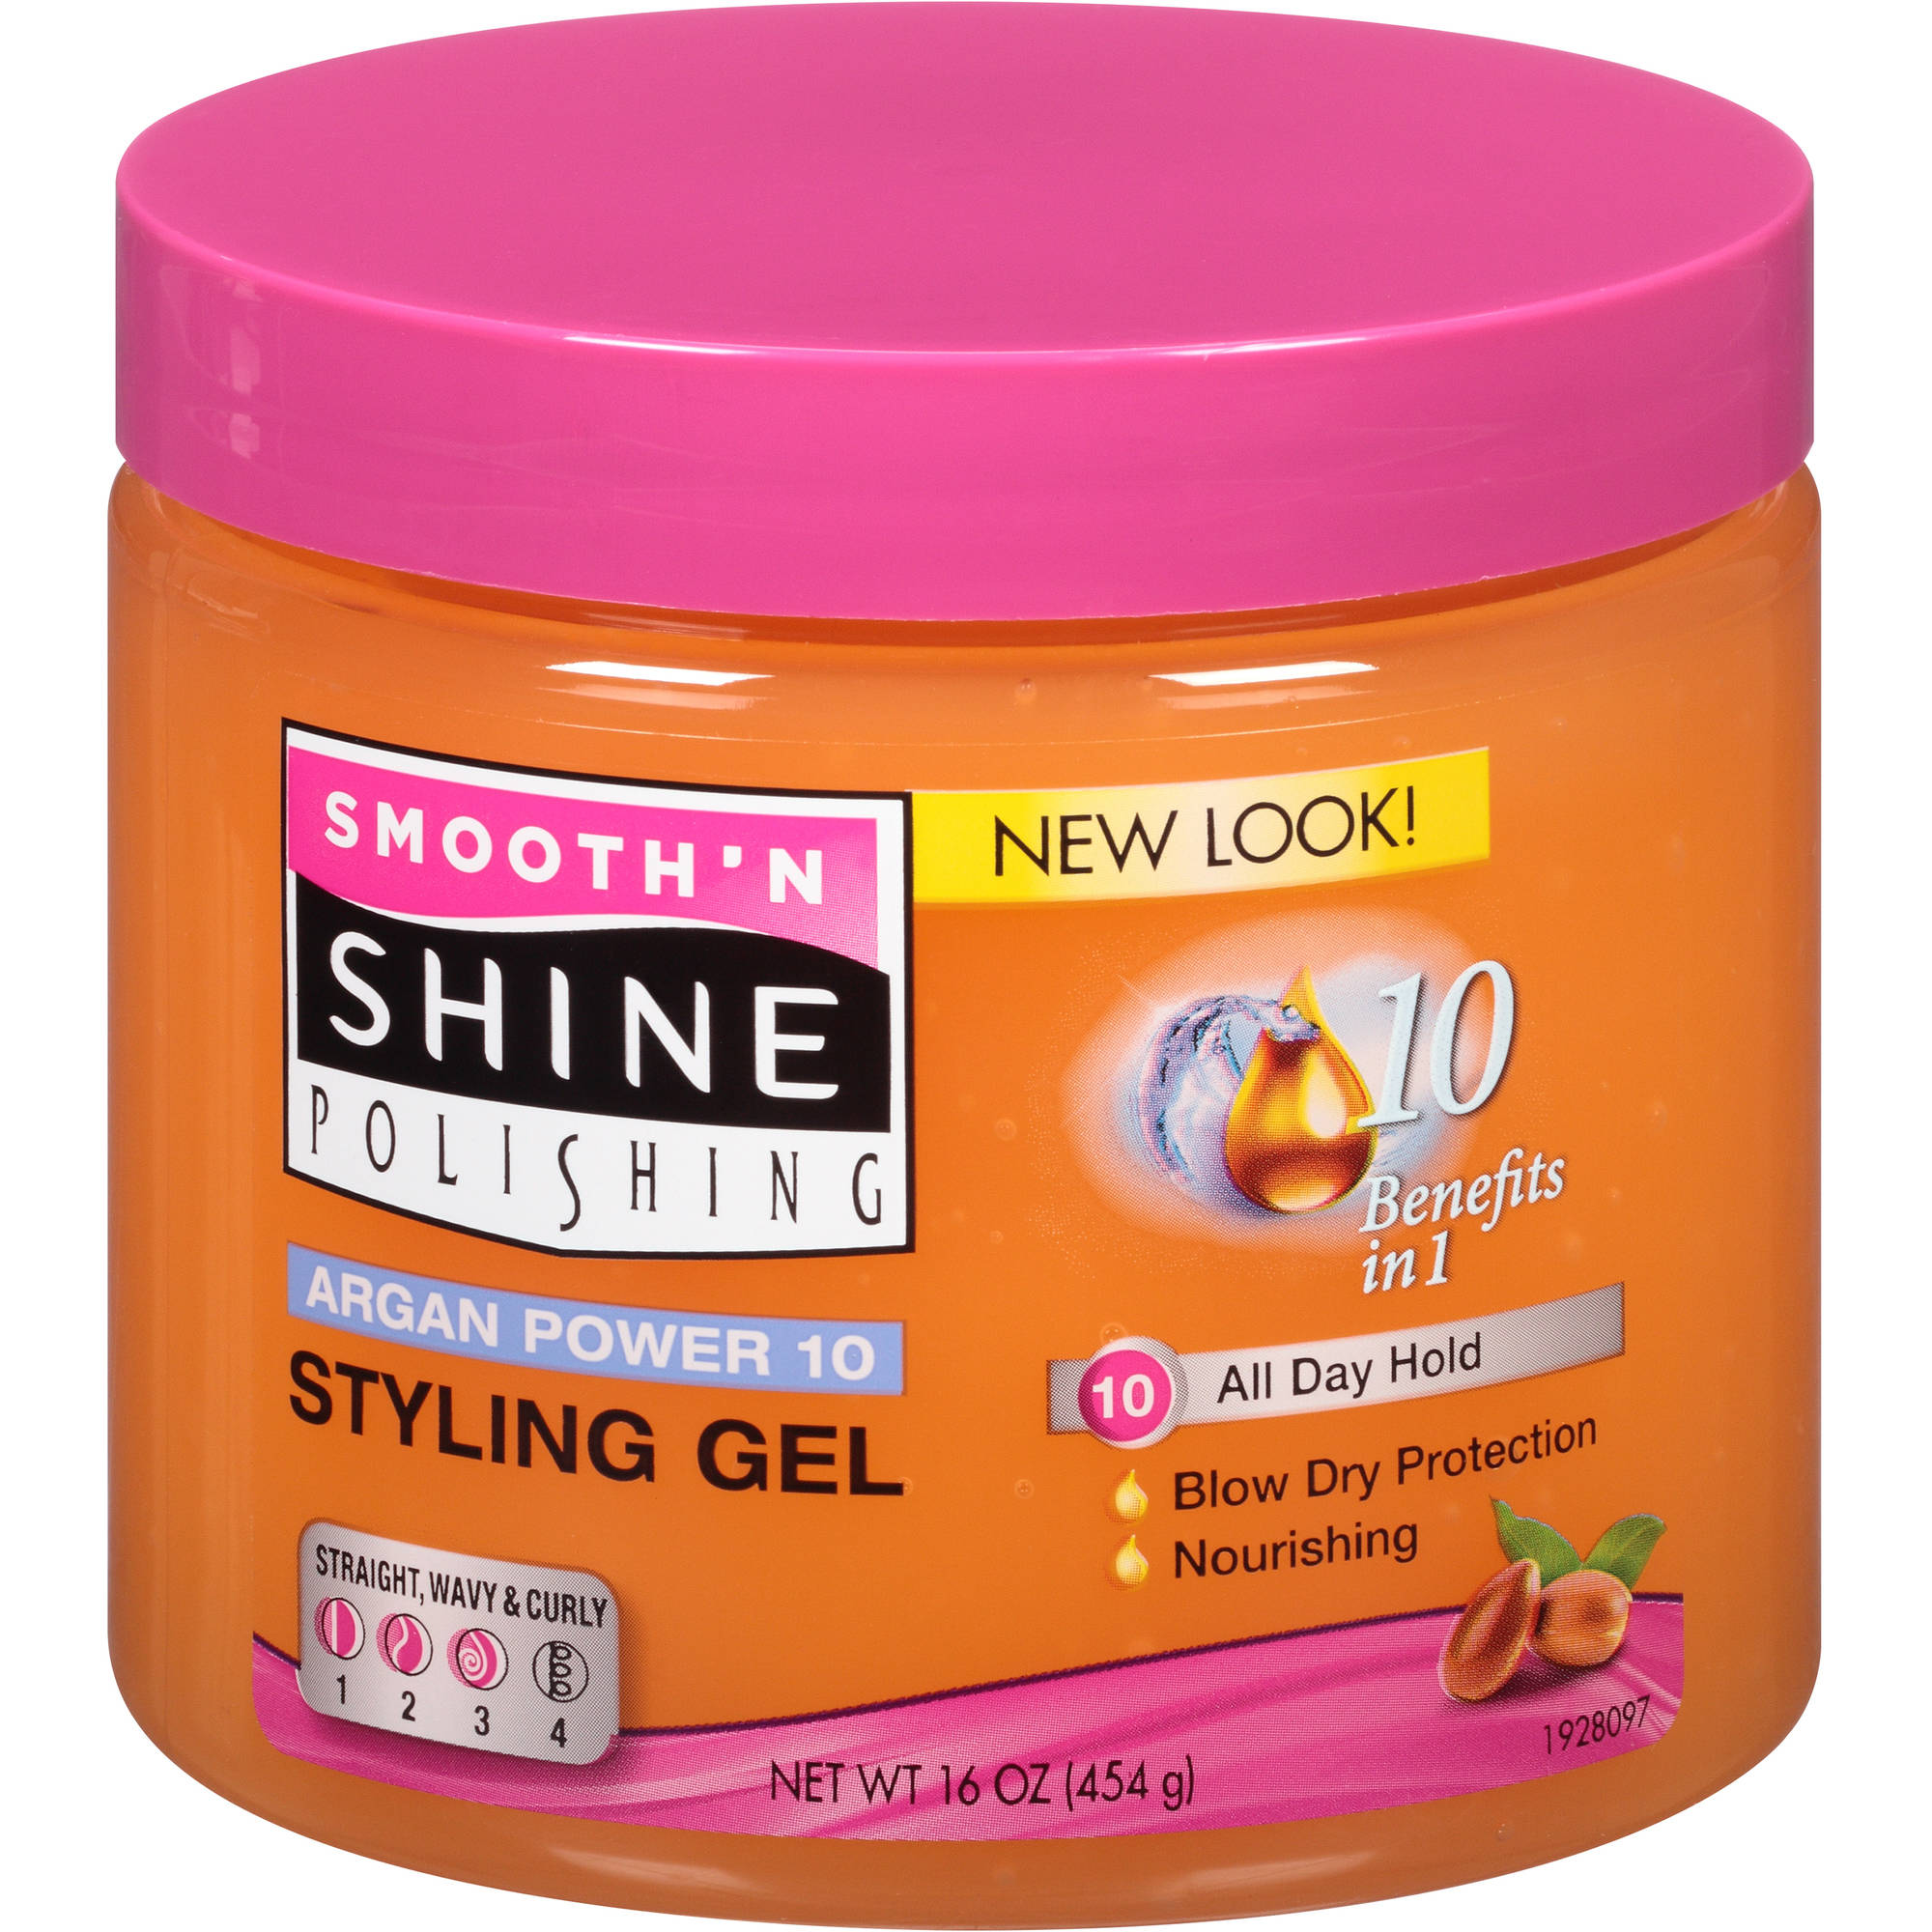 walmart hair styling products smooth n shine polishing argan power 10 nourishing 3635